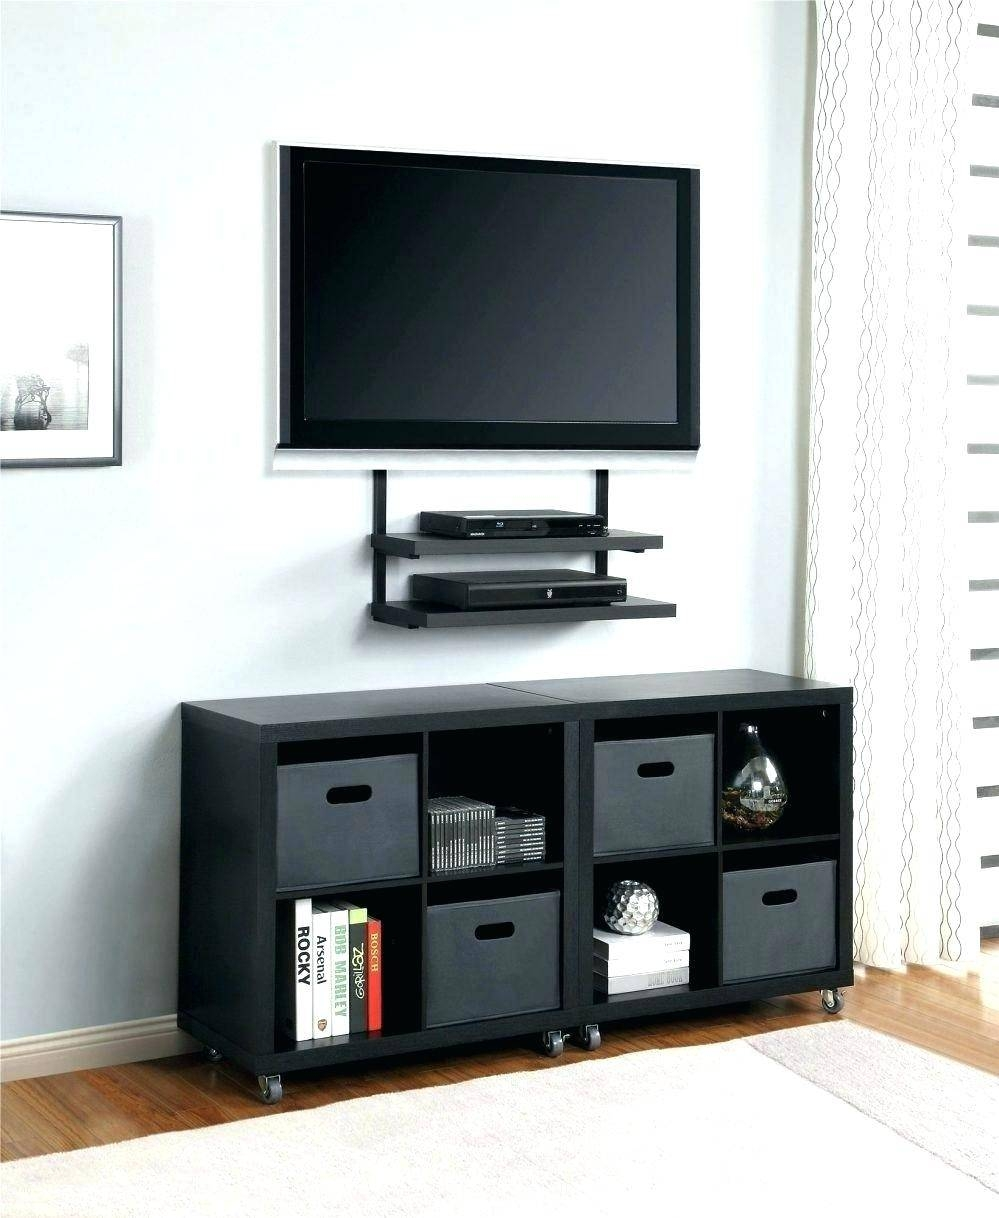 Tv Stand : Chic Full Image For Closed Tv Stand Wall Unit Hanging within Sleek Tv Stands (Image 11 of 15)